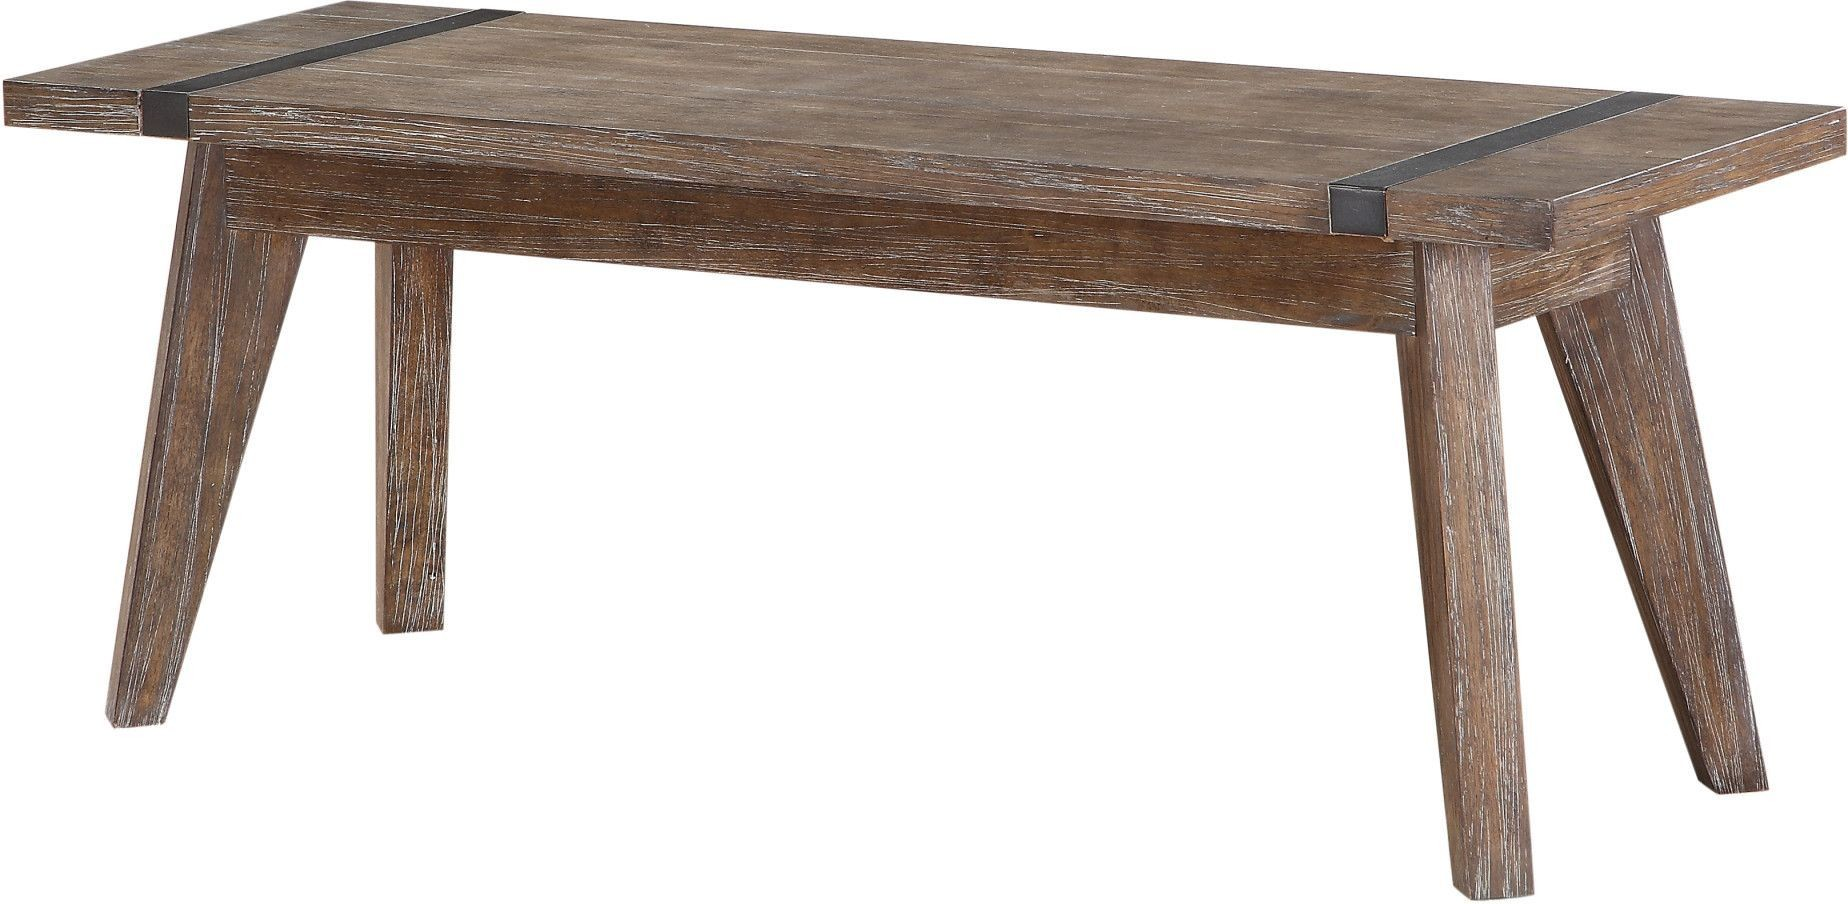 Viewpoint Driftwood Bench From Emerald Home Coleman Furniture